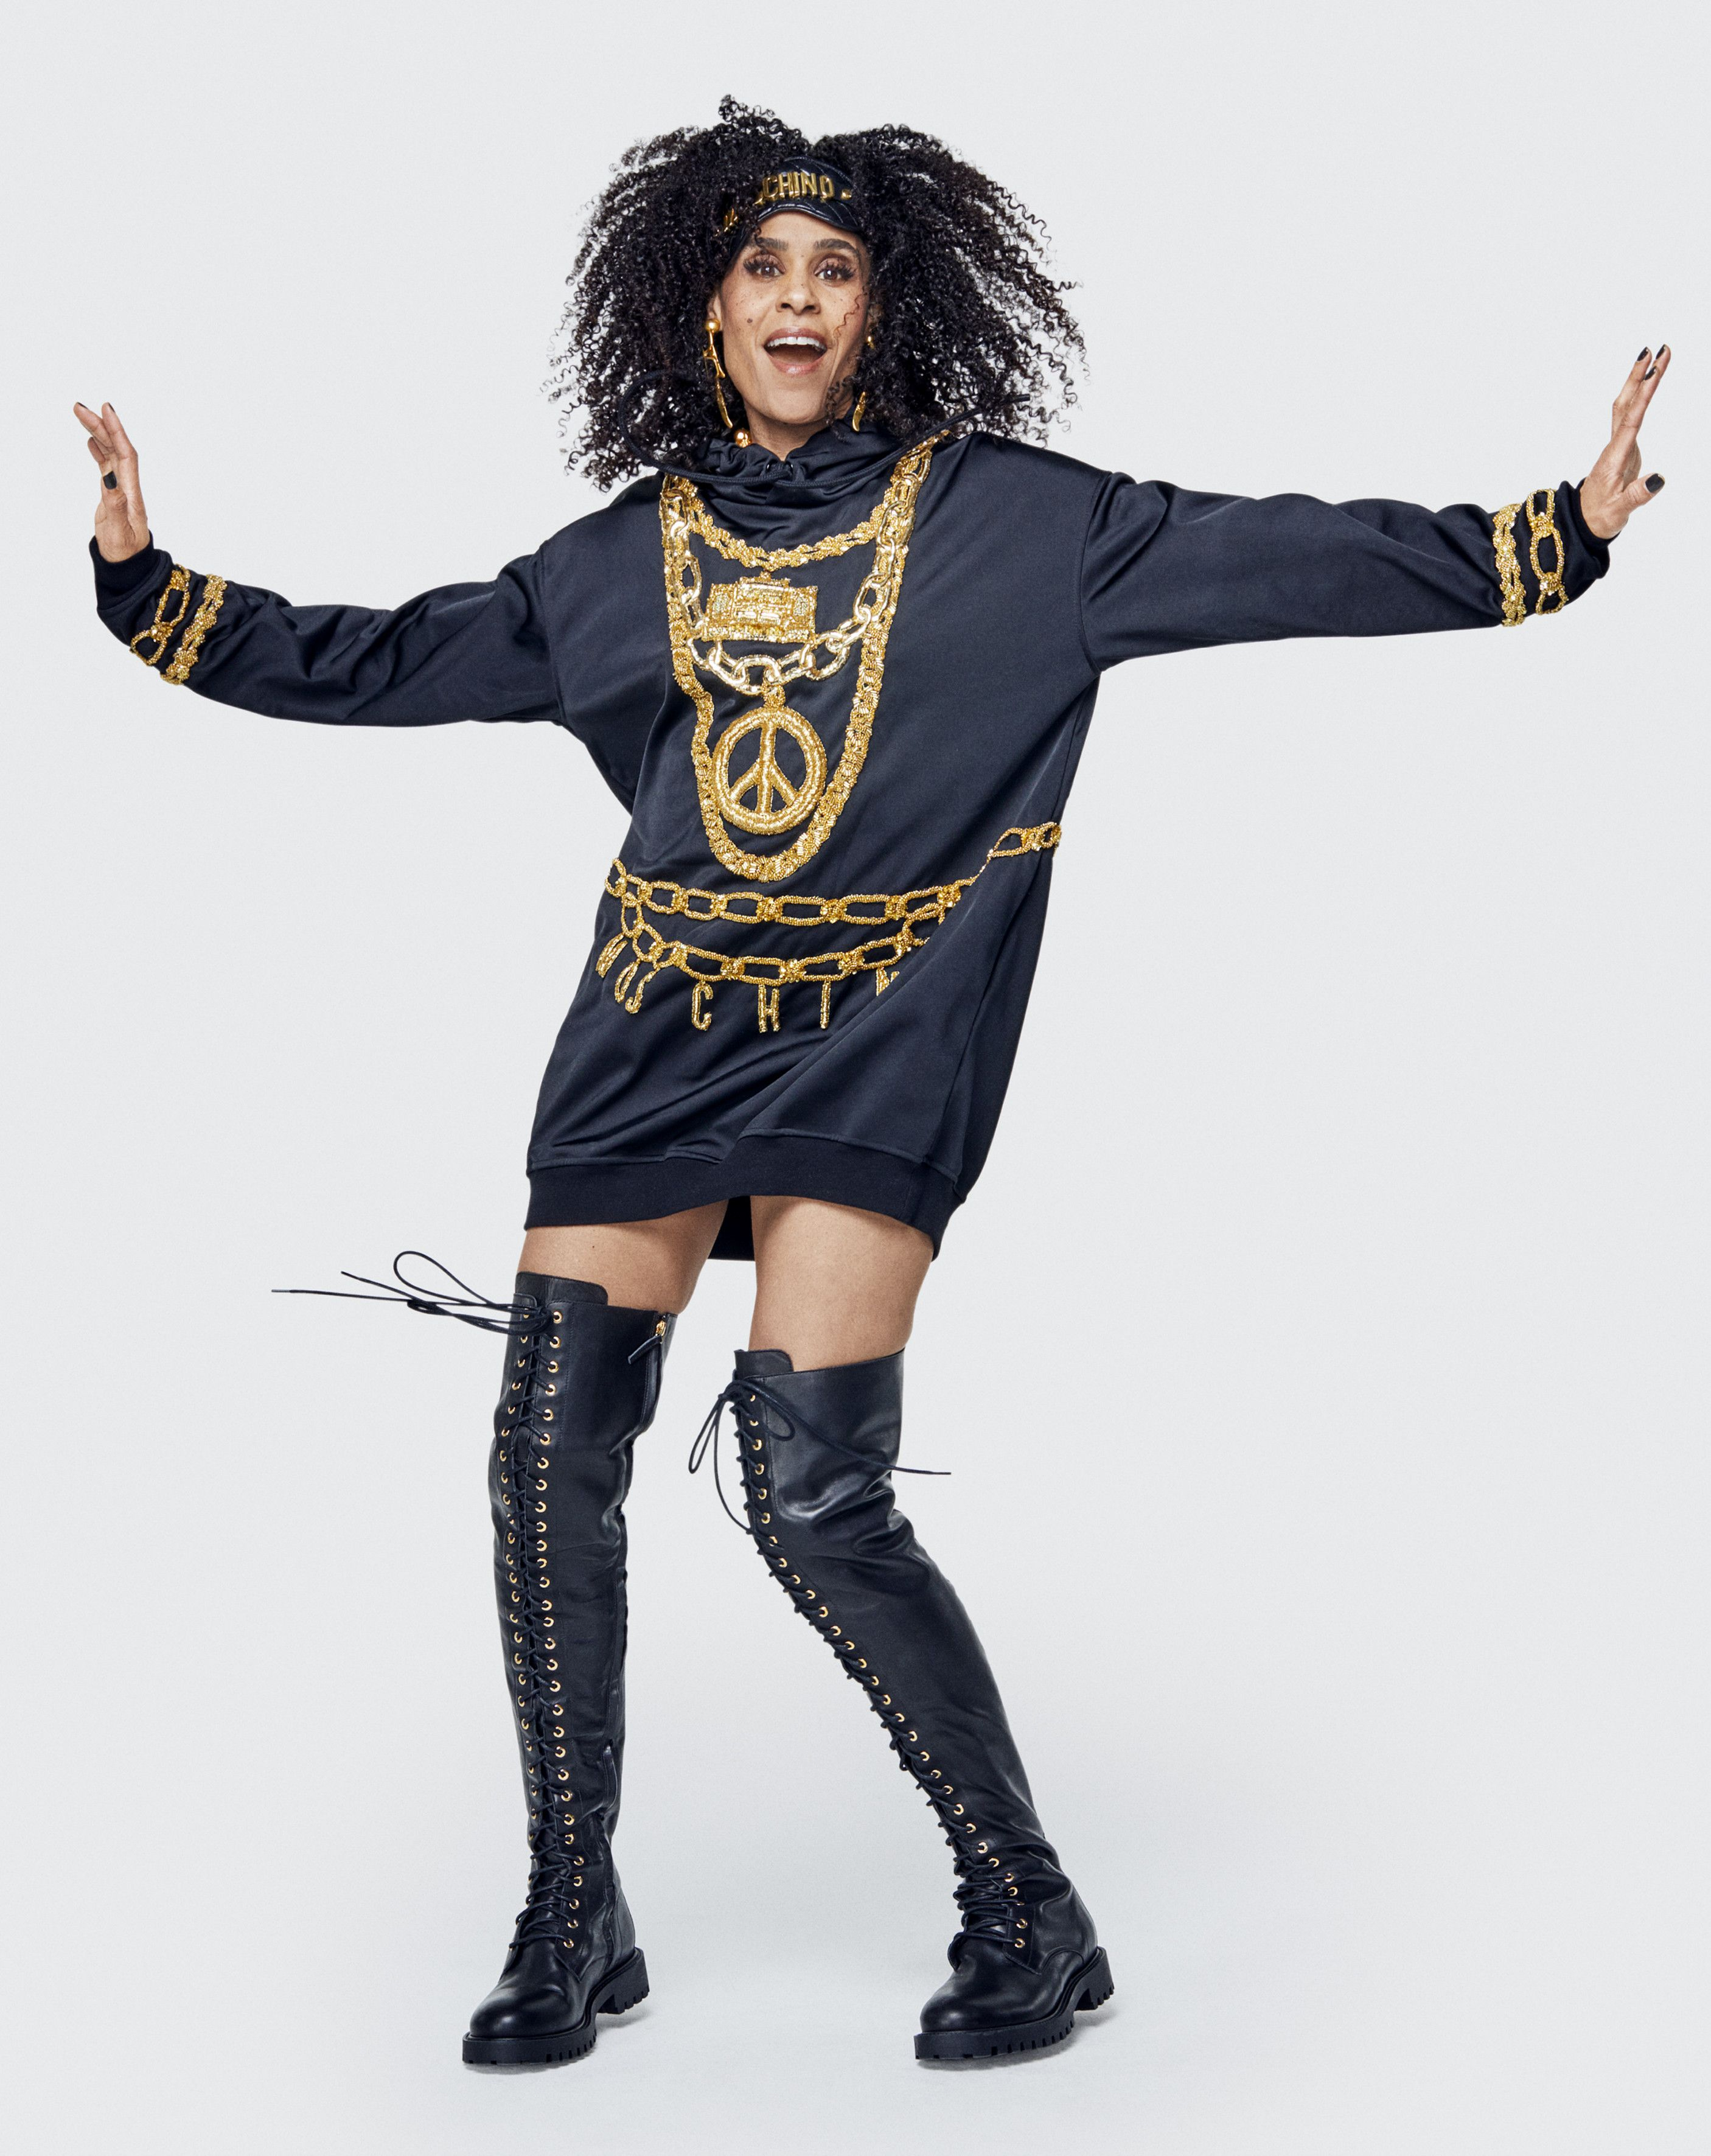 Moschino x H&M Collaboration First Look at Every Piece